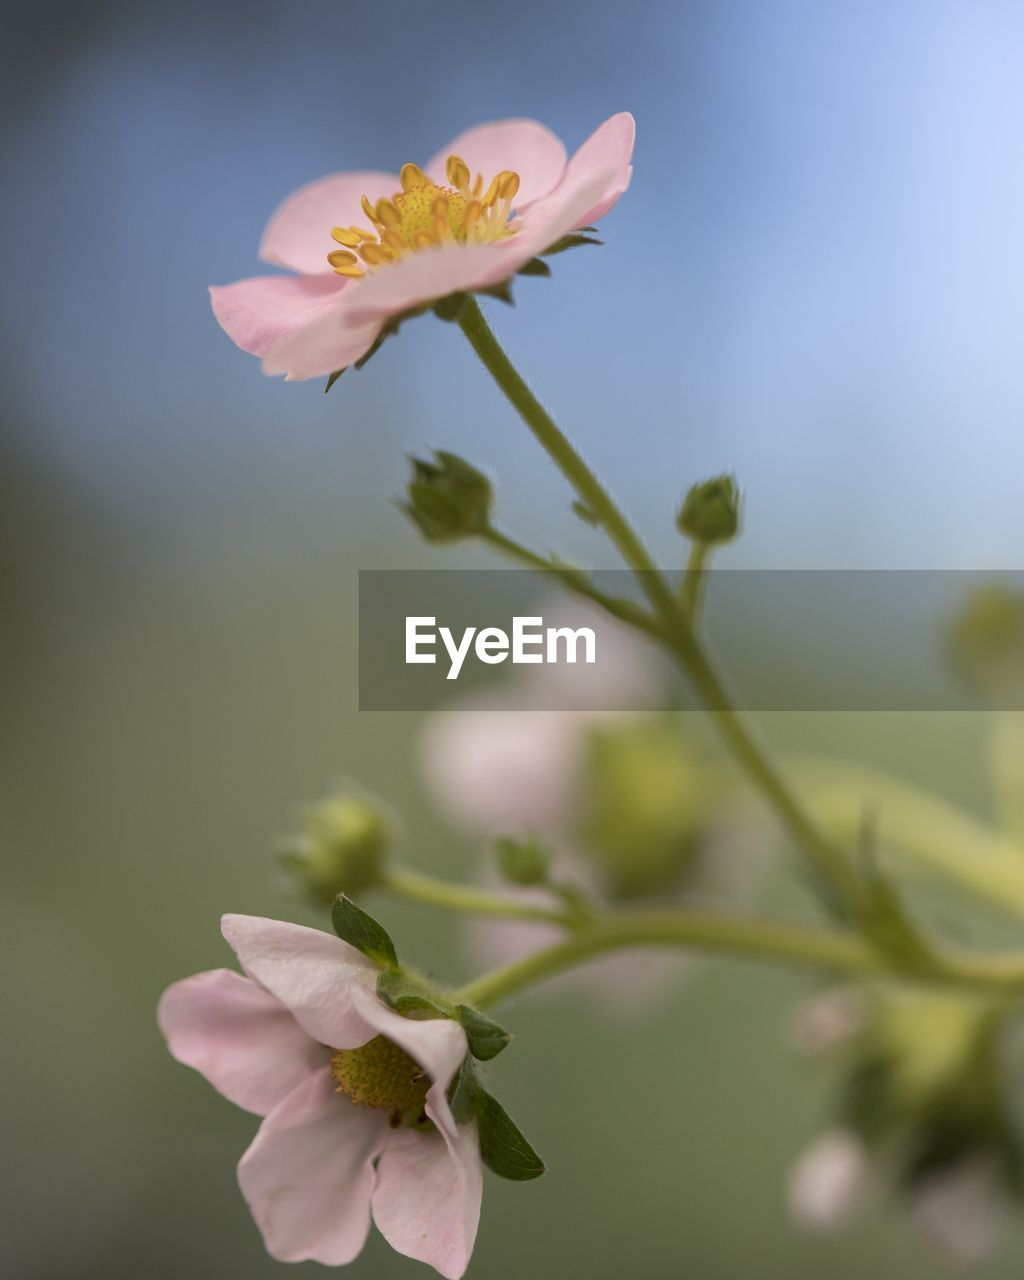 flowering plant, flower, plant, fragility, vulnerability, beauty in nature, petal, freshness, growth, close-up, focus on foreground, inflorescence, flower head, nature, pink color, day, no people, plant stem, outdoors, bud, pollen, spring